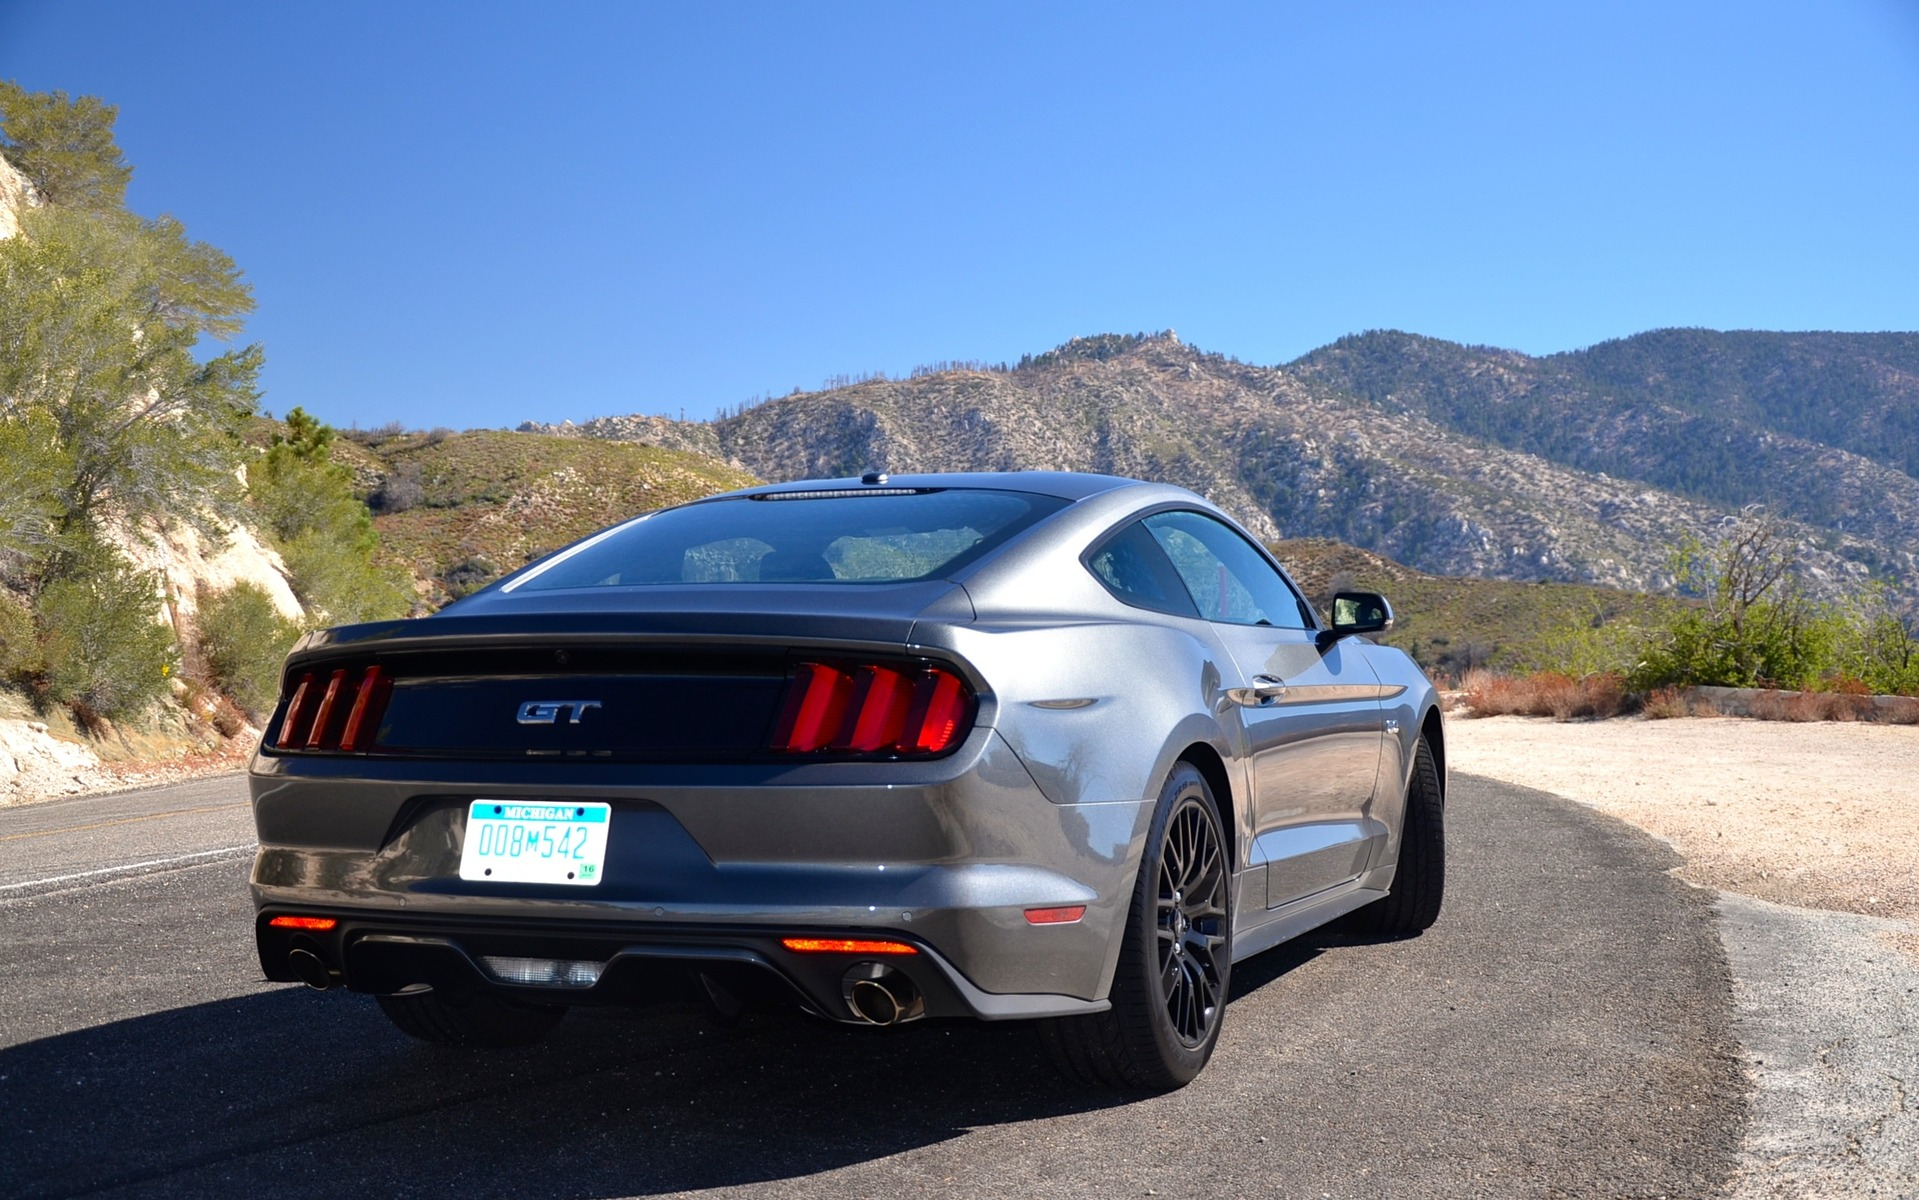 2015 ford mustang gt coupe on angeles crest highway near los angeles picture gallery photo. Black Bedroom Furniture Sets. Home Design Ideas